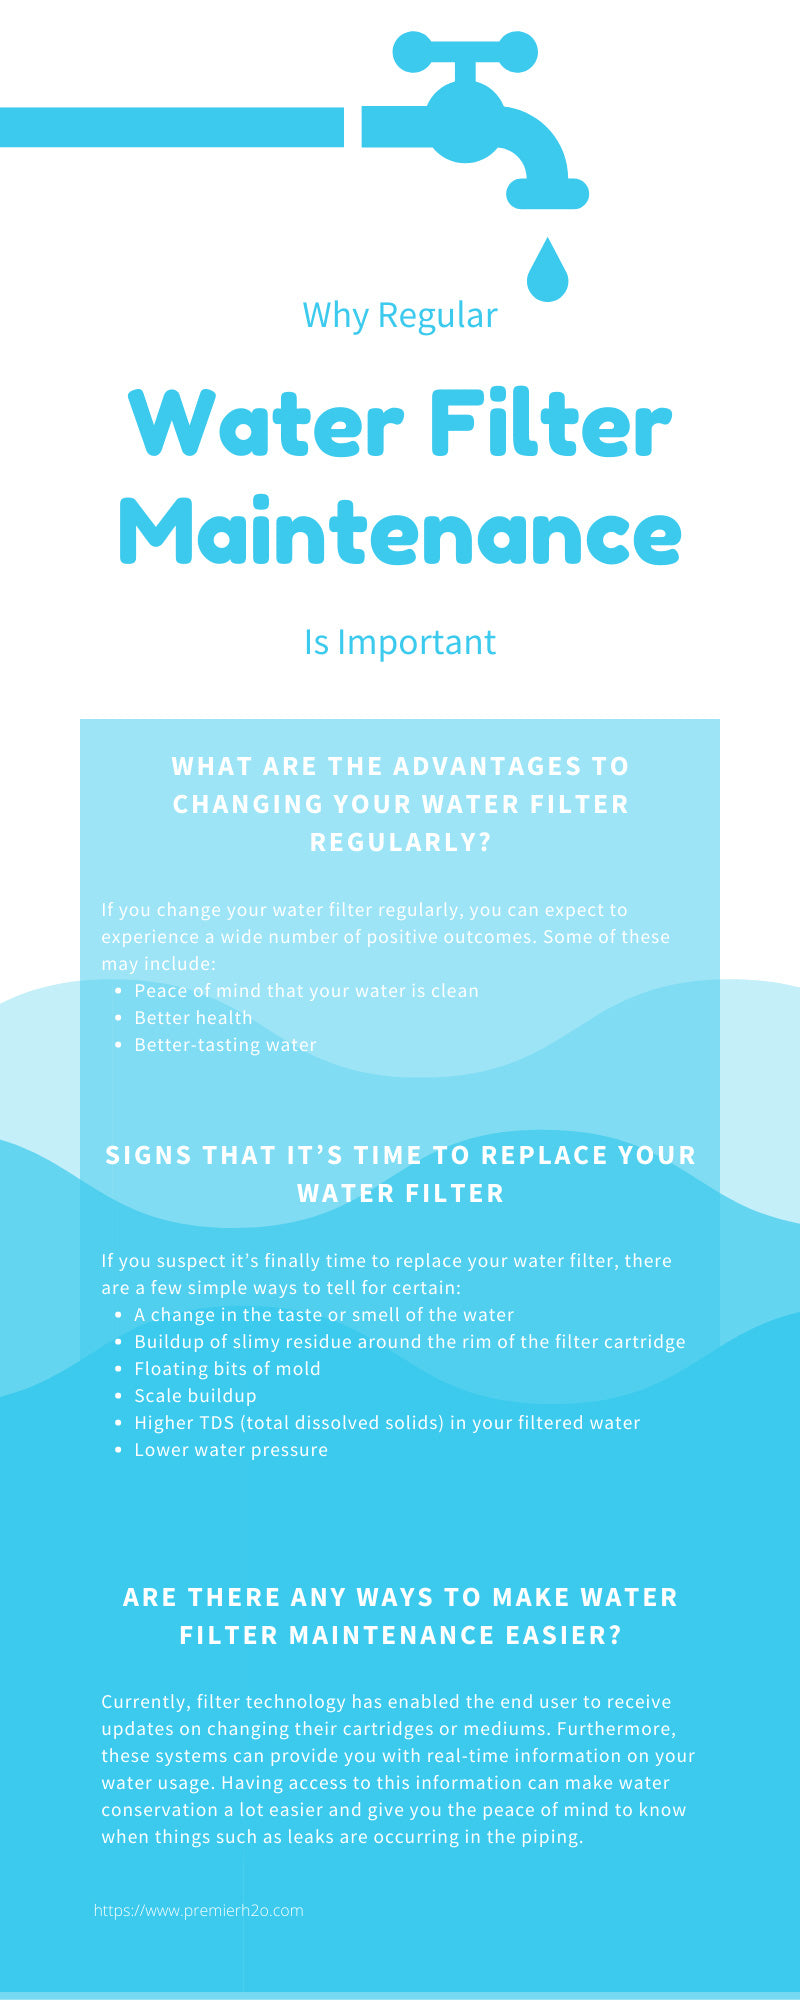 Why Regular Water Filter Maintenance Is Important